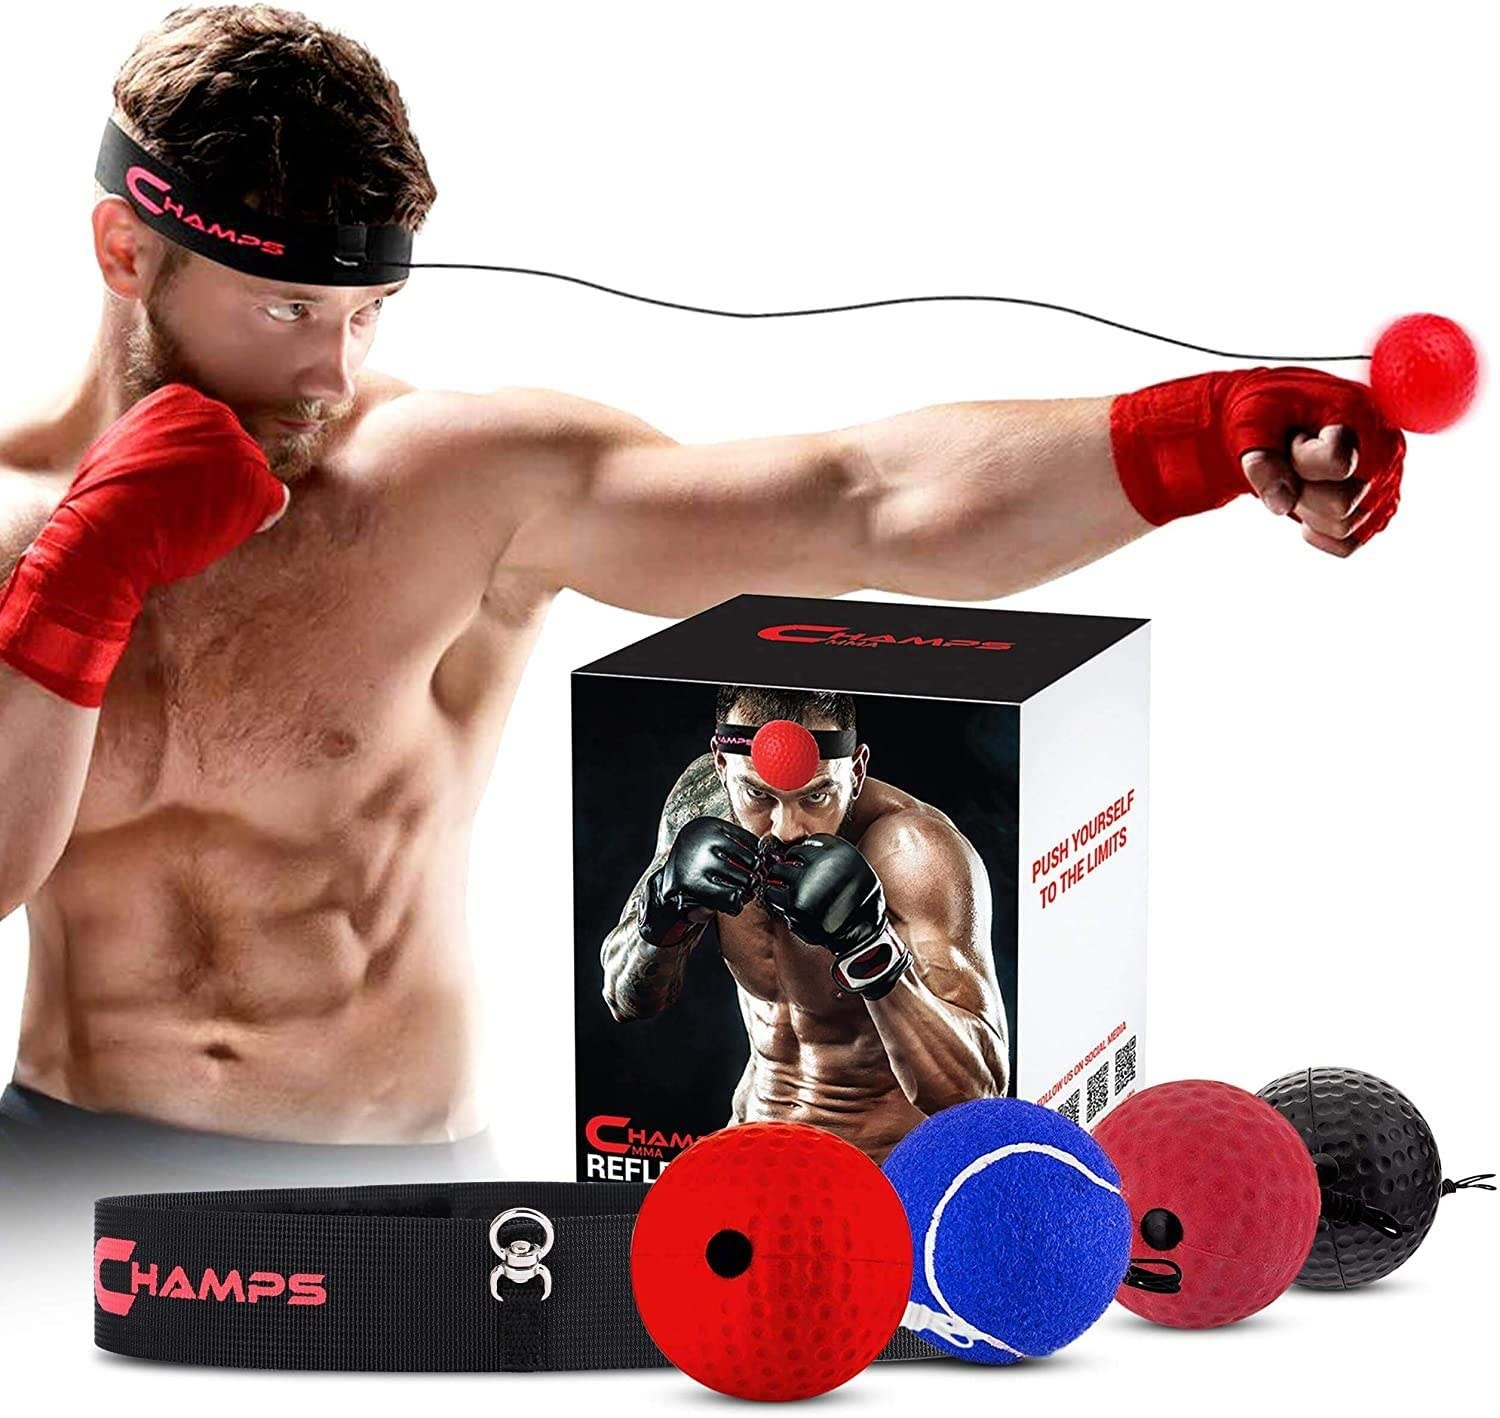 Person wearing headband with reflex ball attached, hitting it with boxing braces on. Four different ball options are shown in the front of the image.